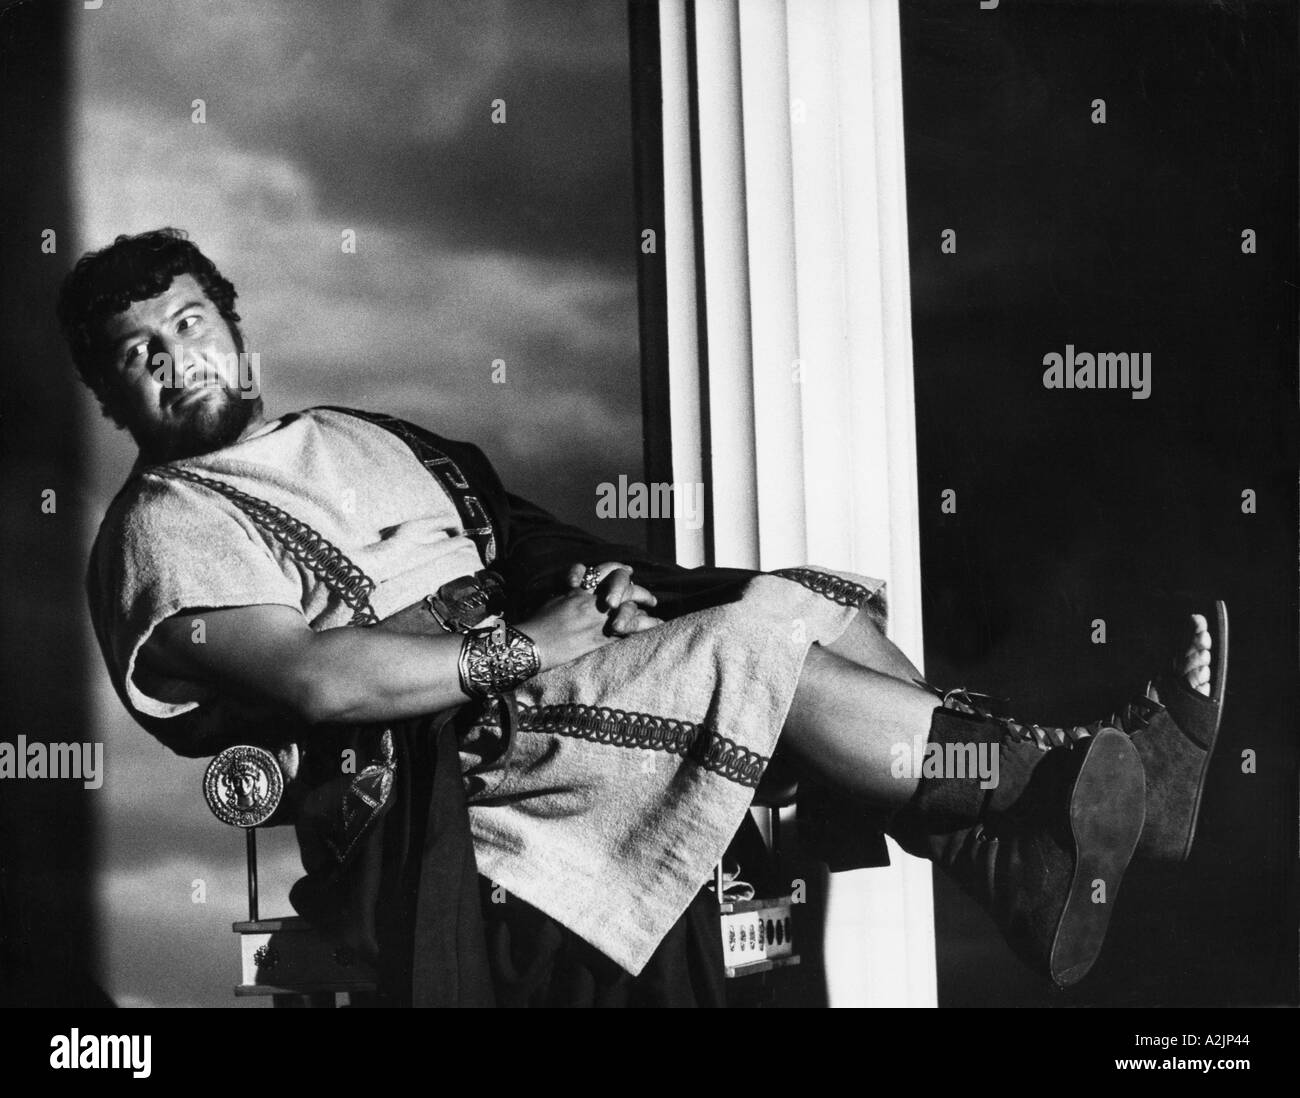 SPARTACUS Peter Ustinov as the slave owner in the 1960 film - Stock Image